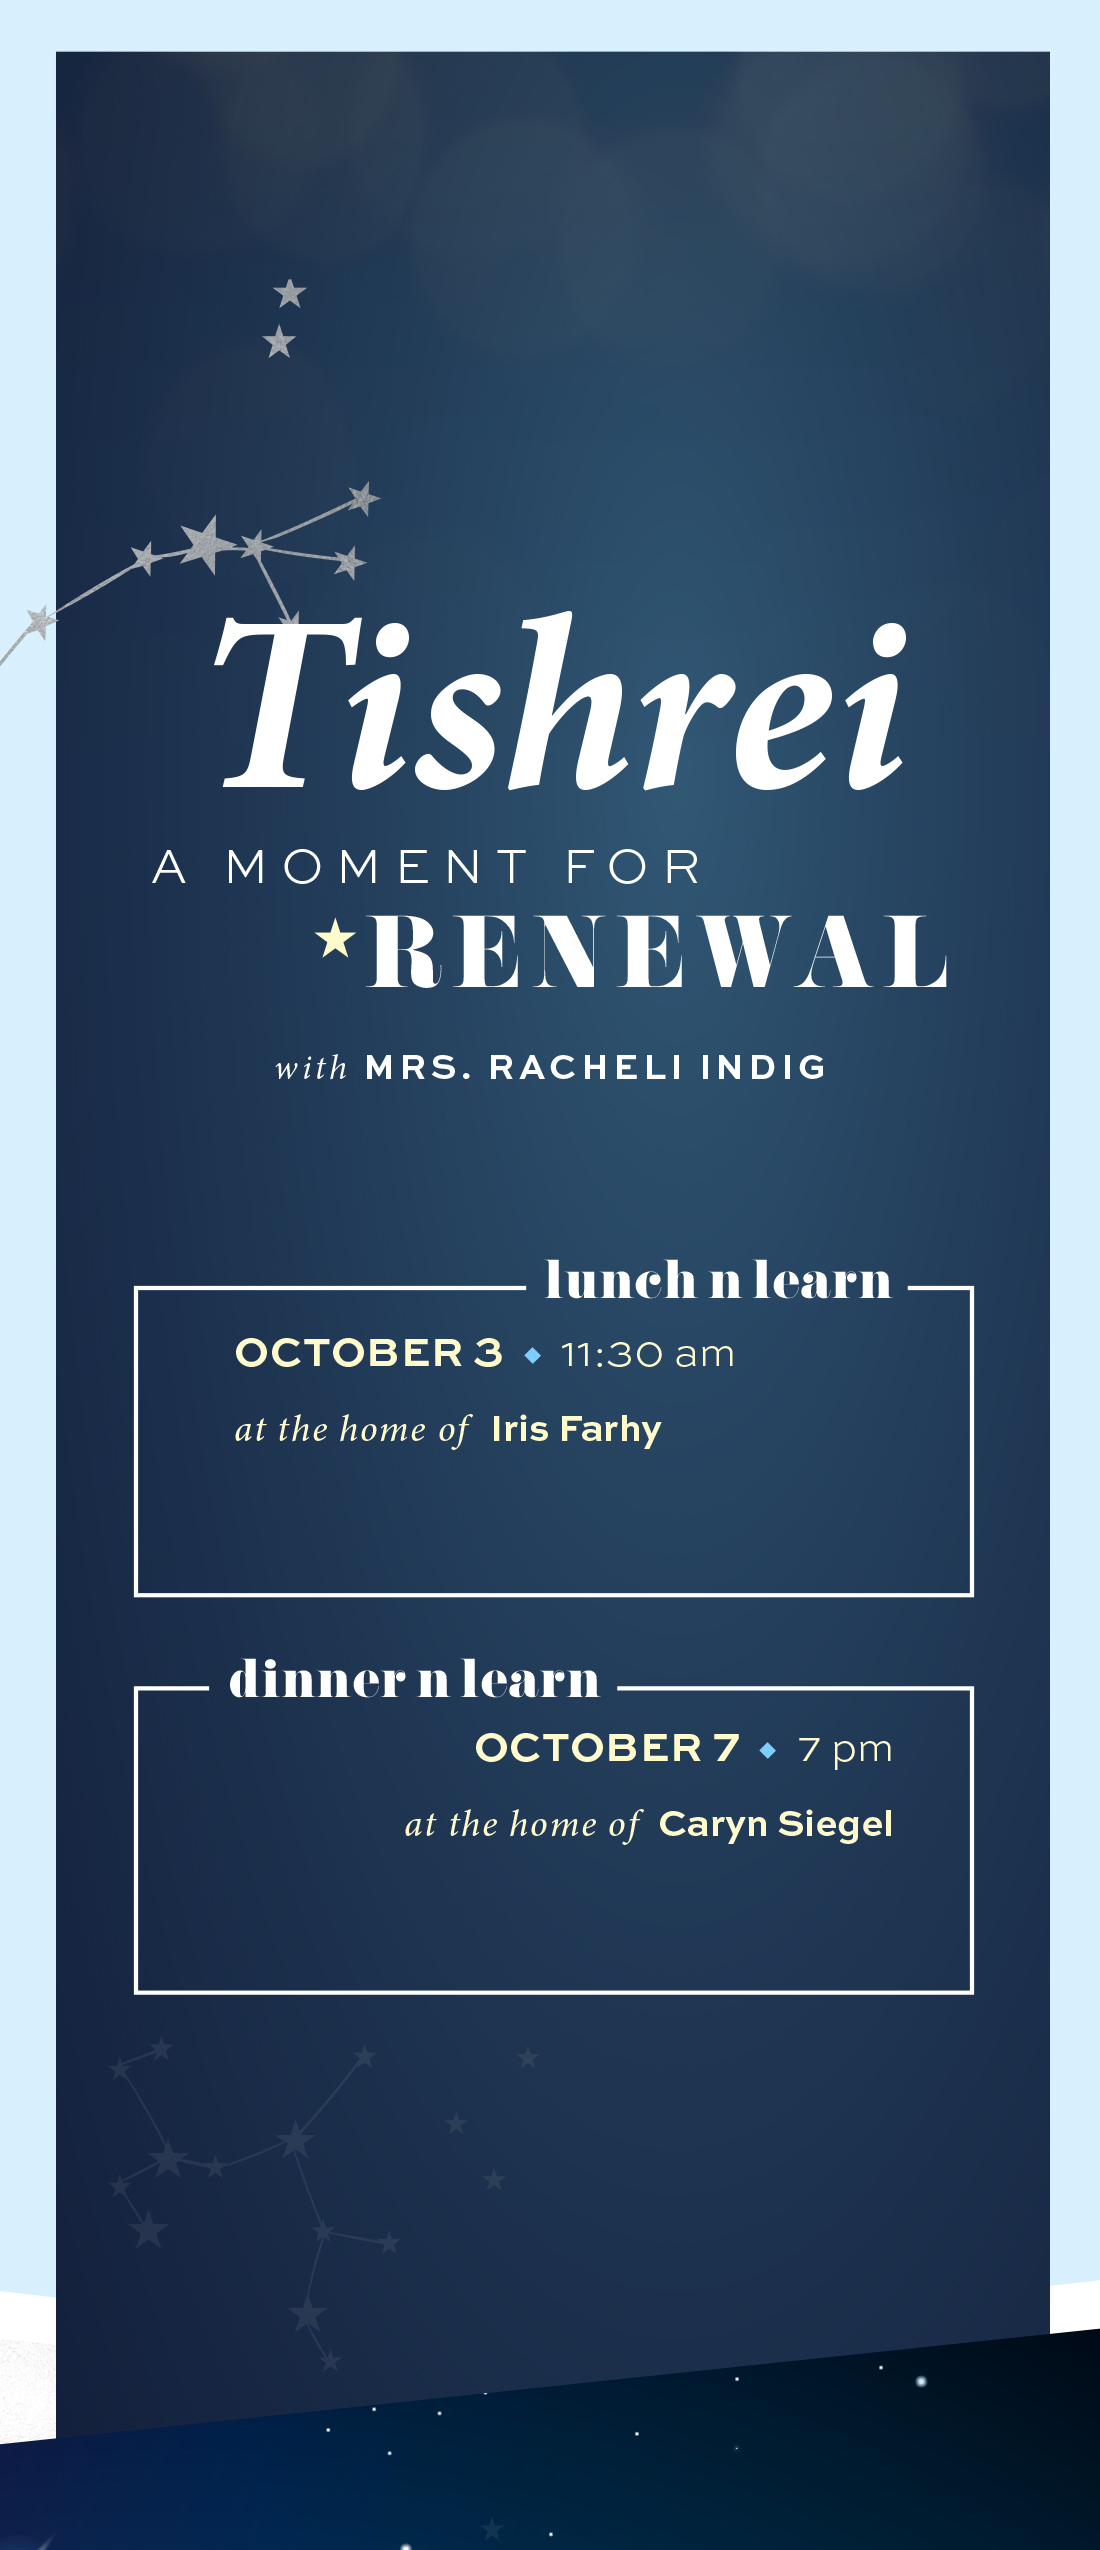 Moments: Tishrei - A Moment for Renewal Lunch 'n Learn